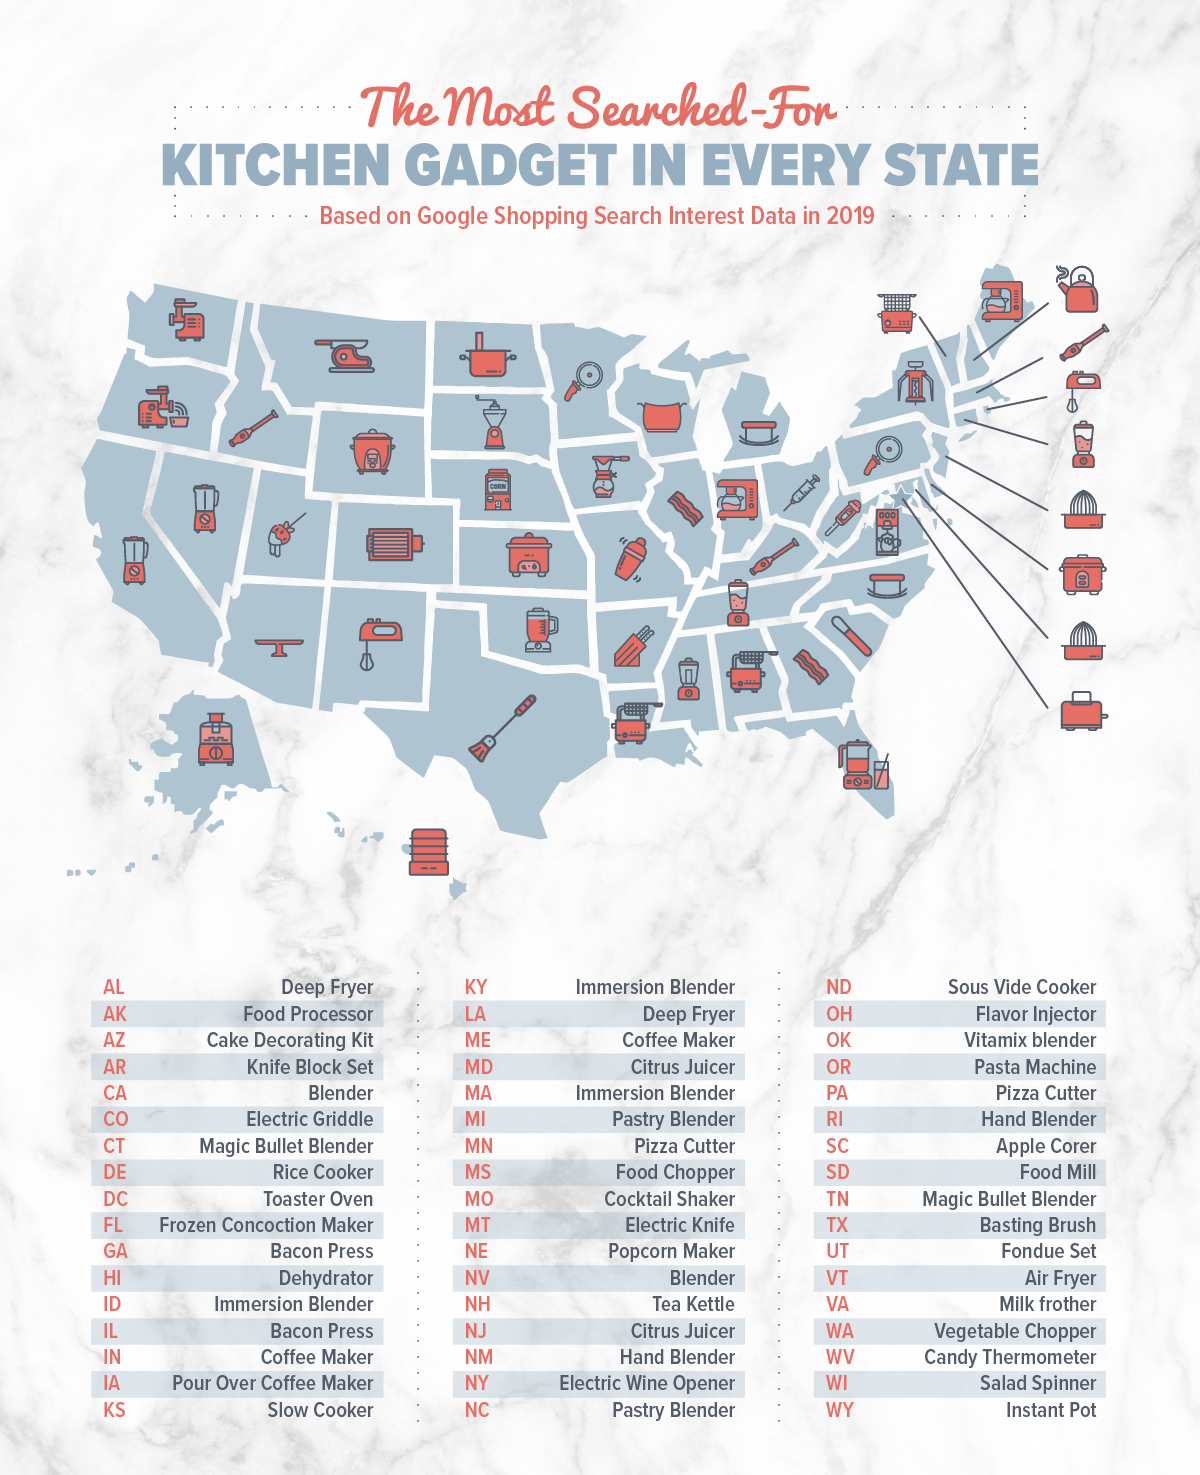 The most popular kitchen gadget in every state.